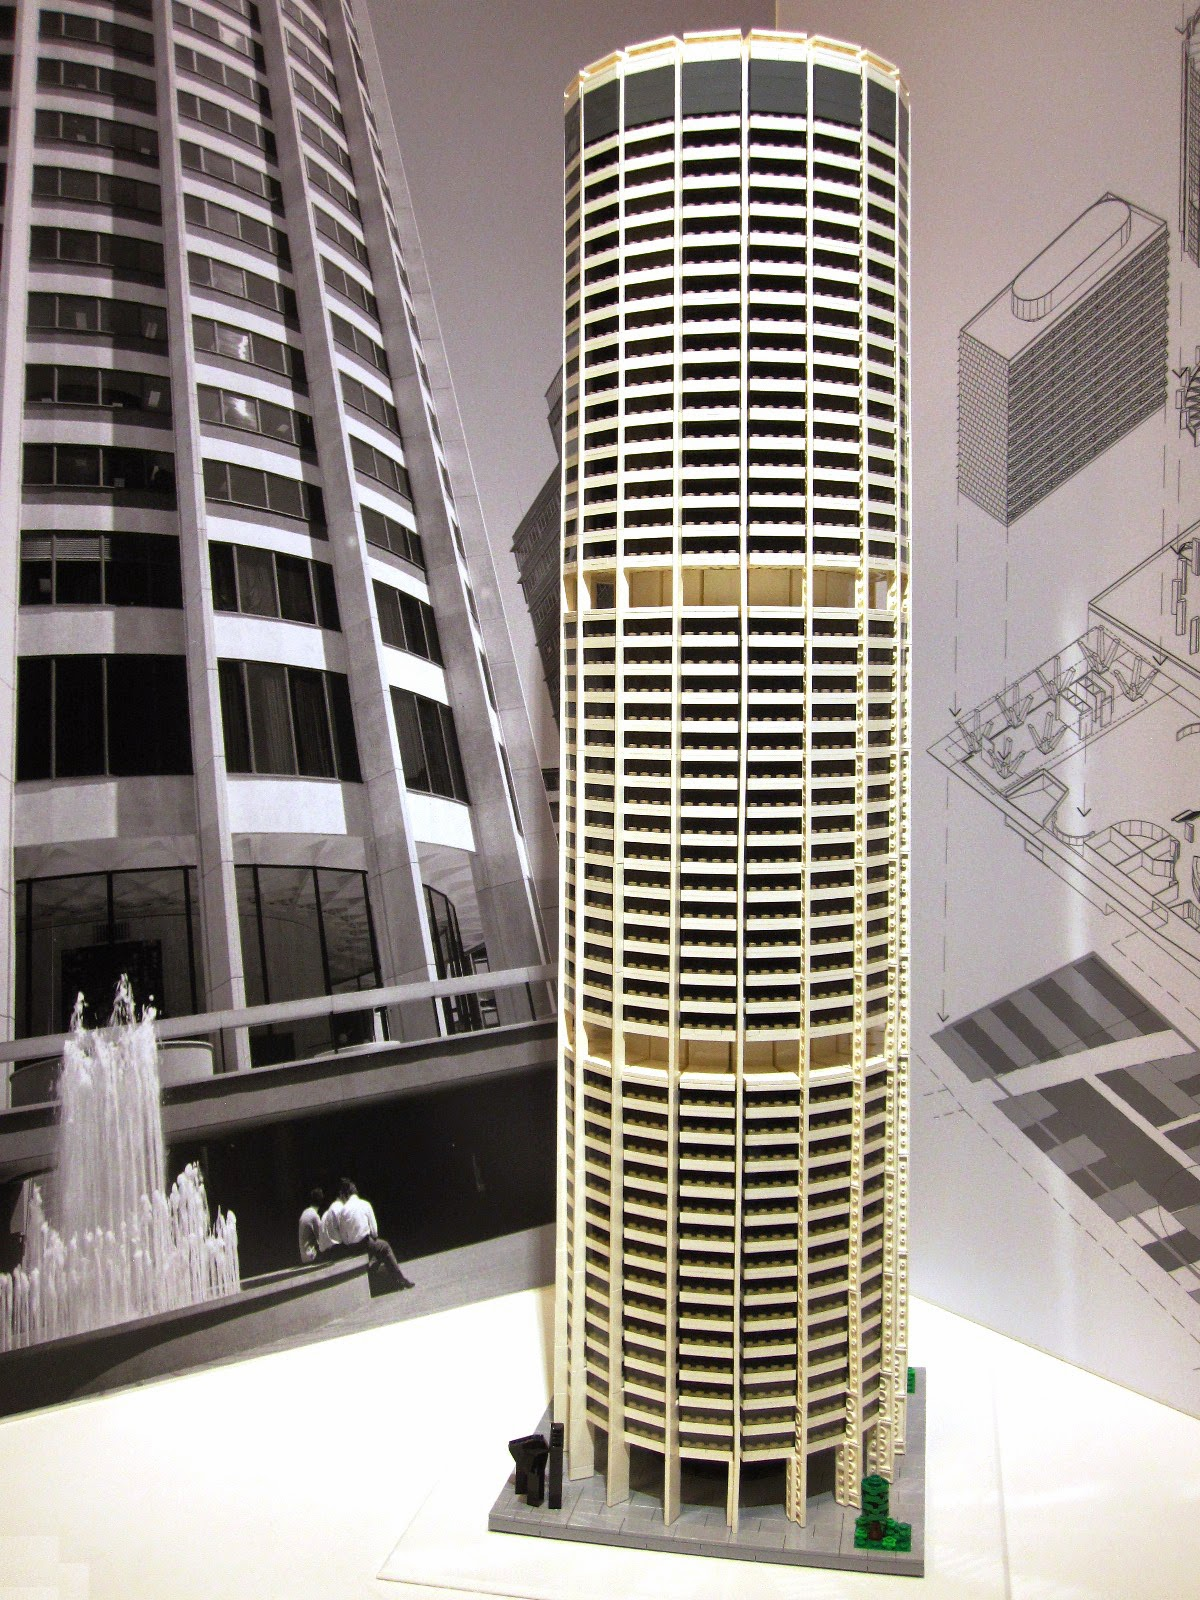 Harry Seidler's Australia Square, made of Lego.